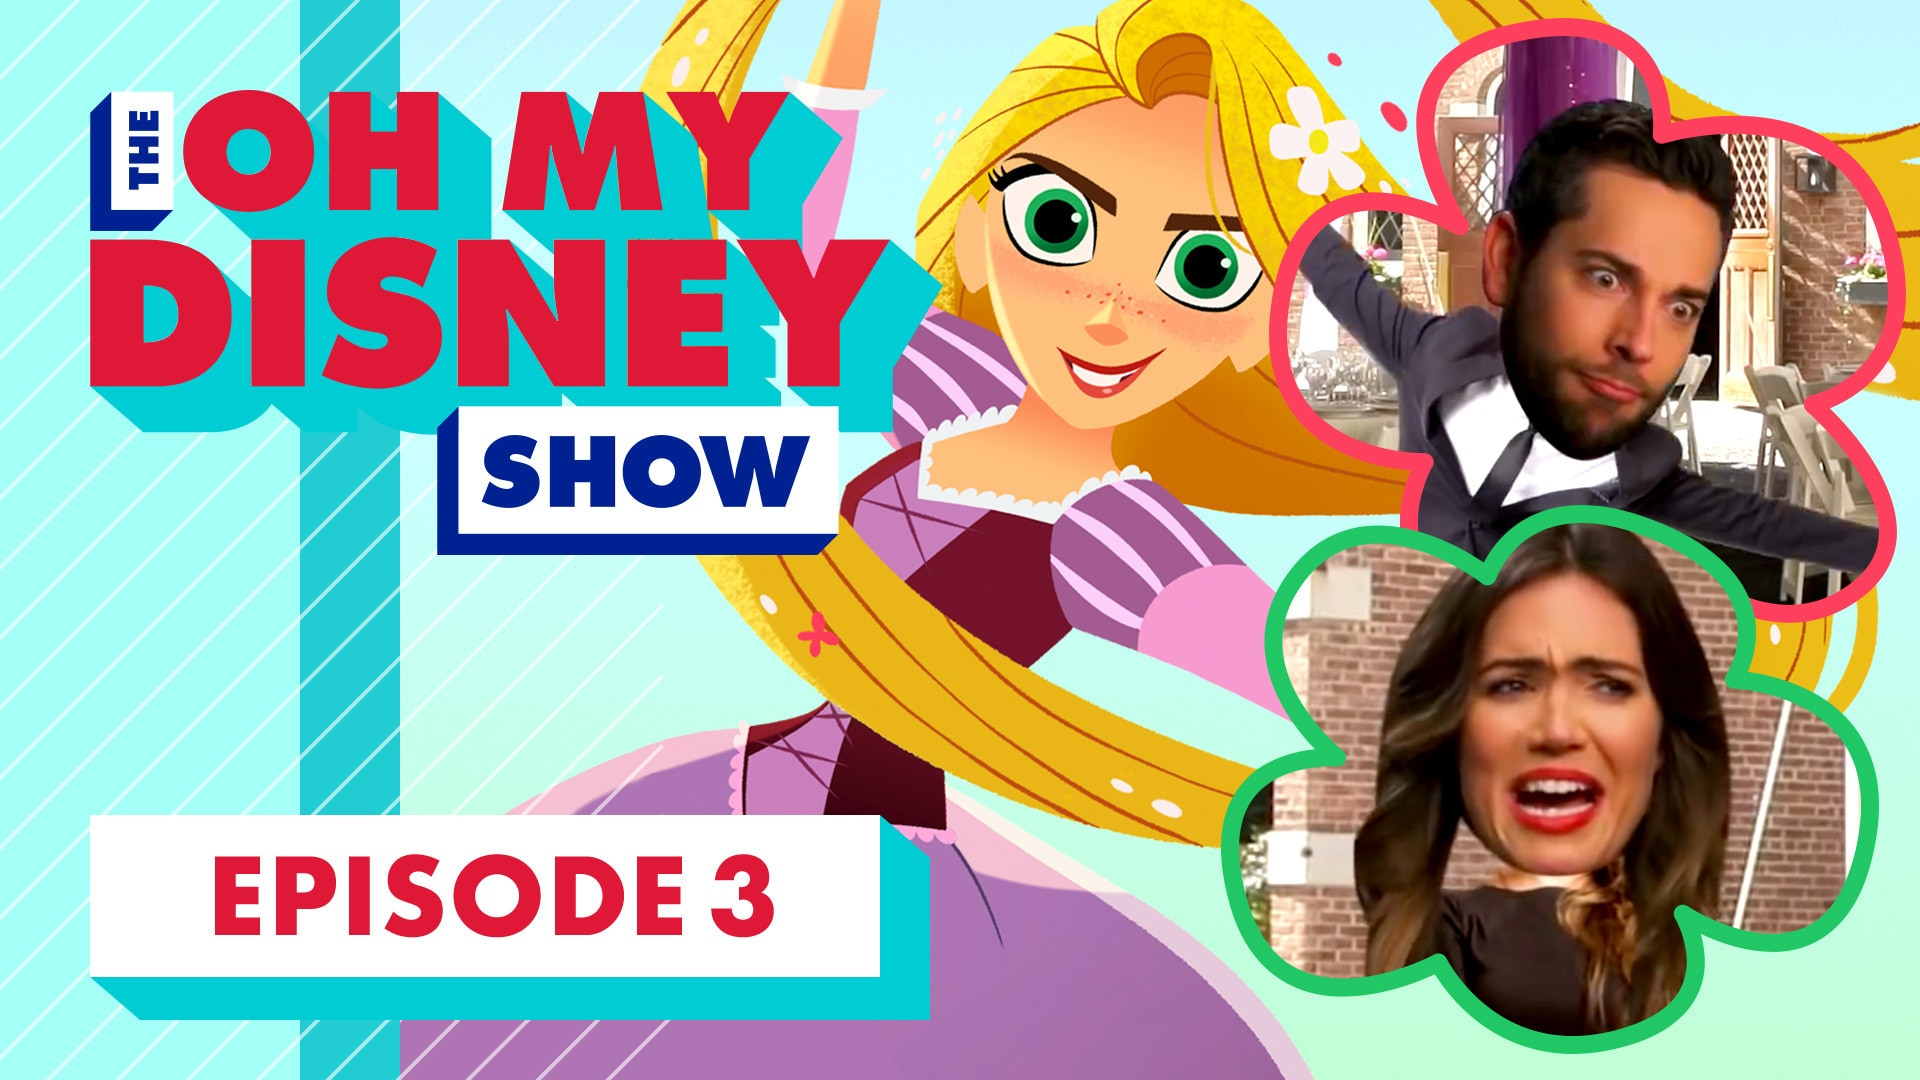 The Oh My Disney Show: Mandy Moore, Zachary Levi, and Temecula Road